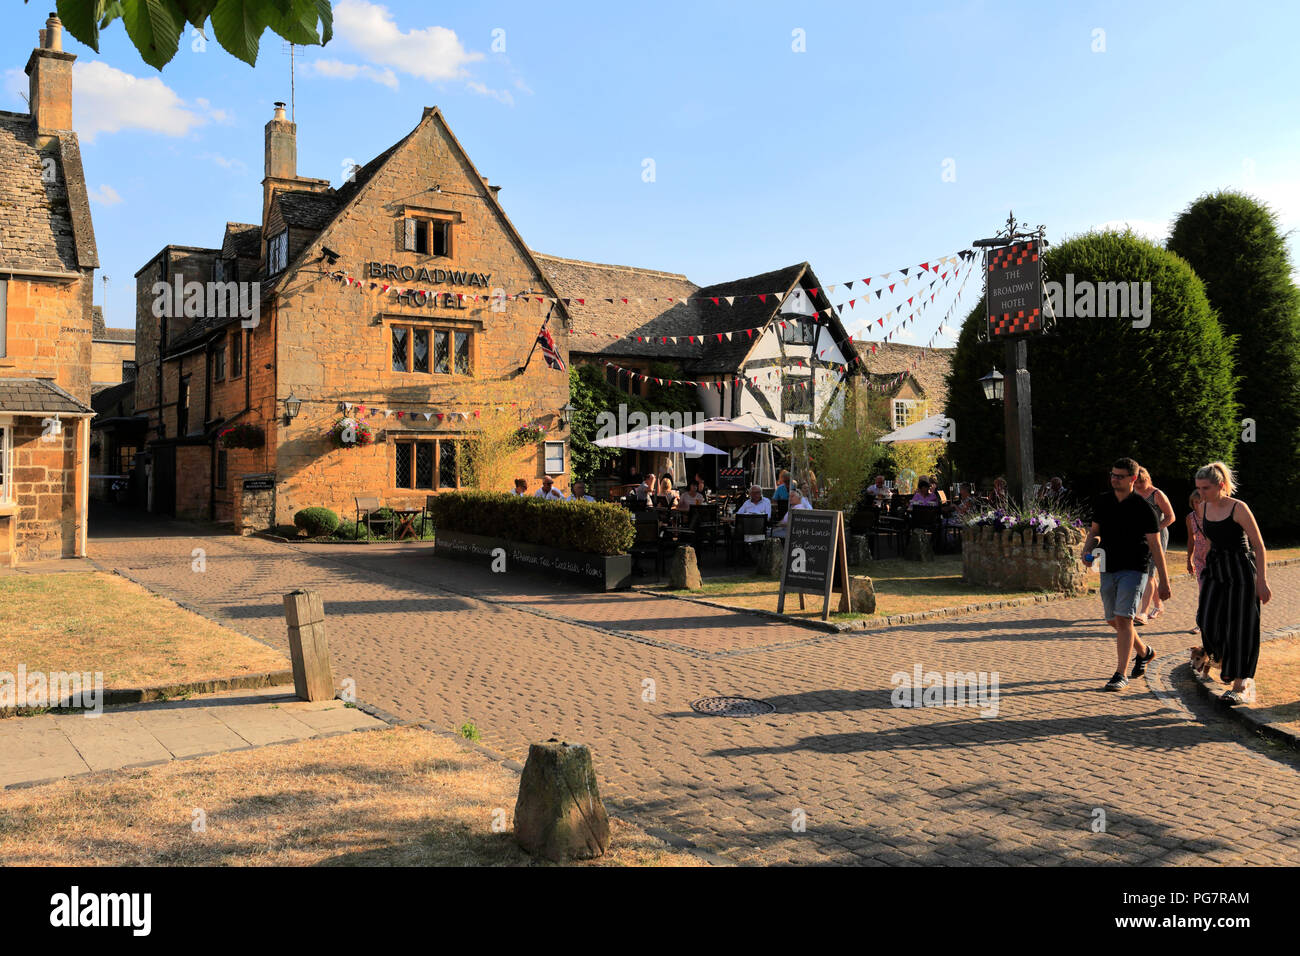 Street scene at Broadway village ,Worcestershire, England, UK - Stock Image